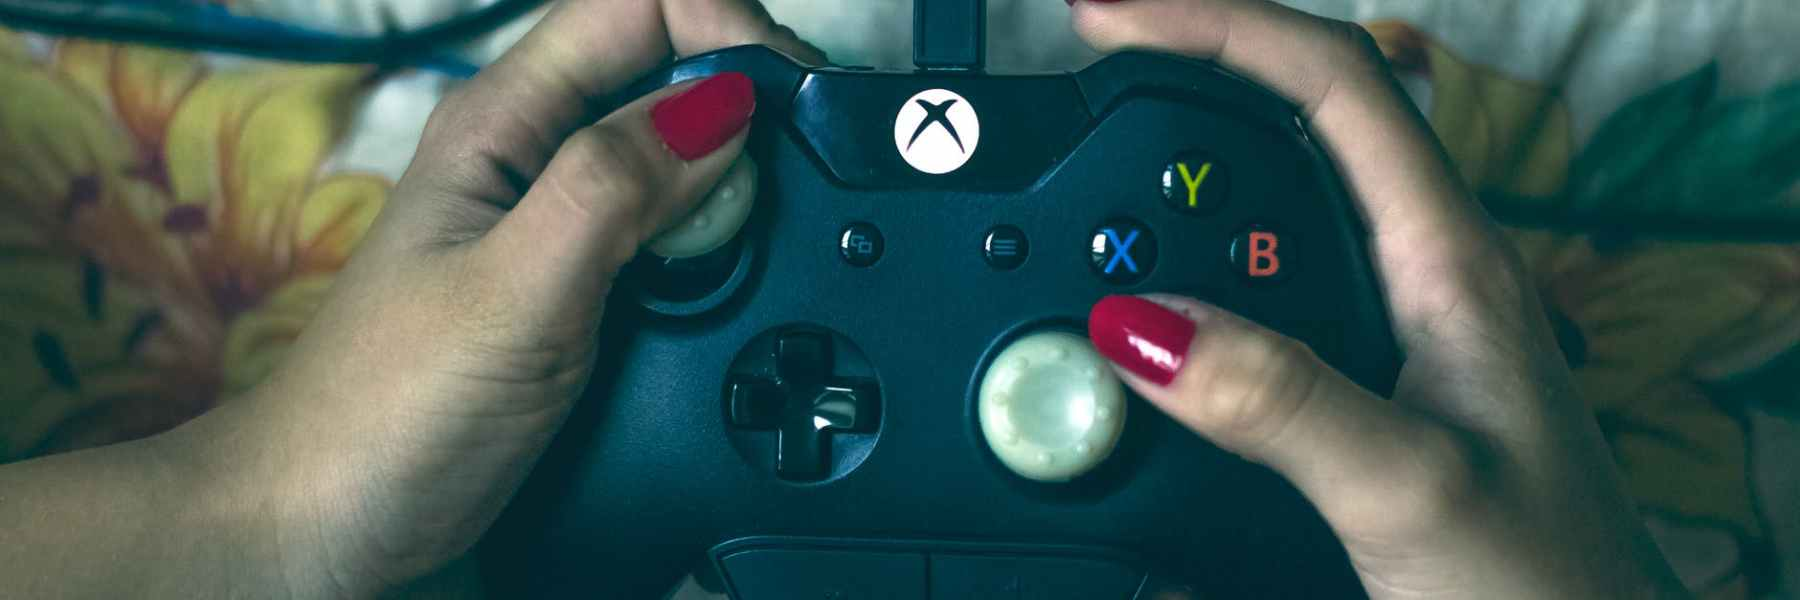 person holding microsoft xbox one controller